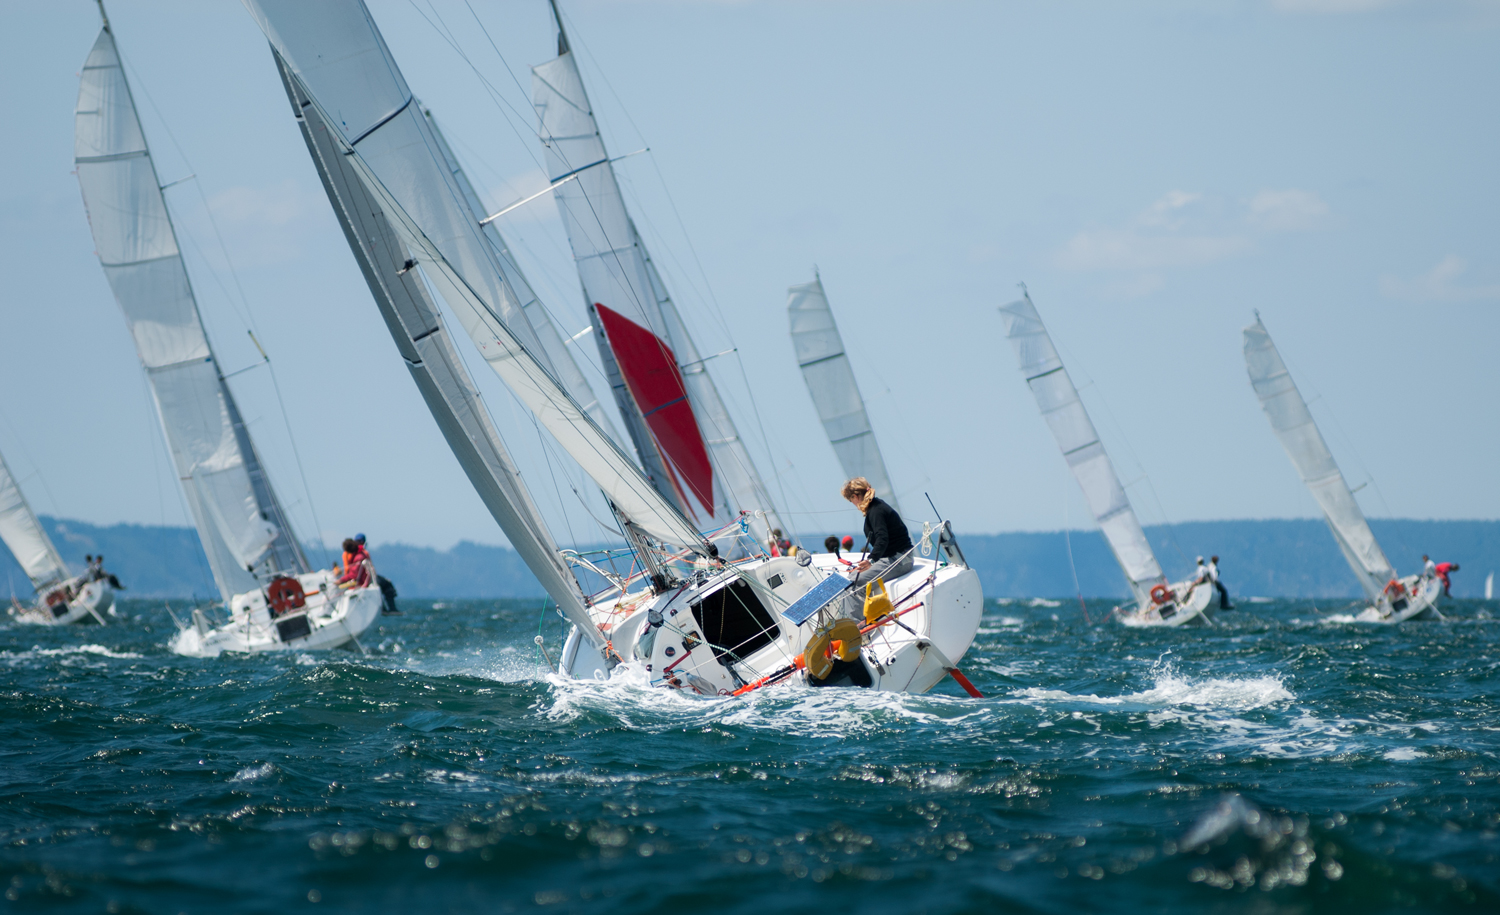 The Summer paradise of sport sailing. Hankø is famous for its regattas, where among others the royal family have been annual participants.